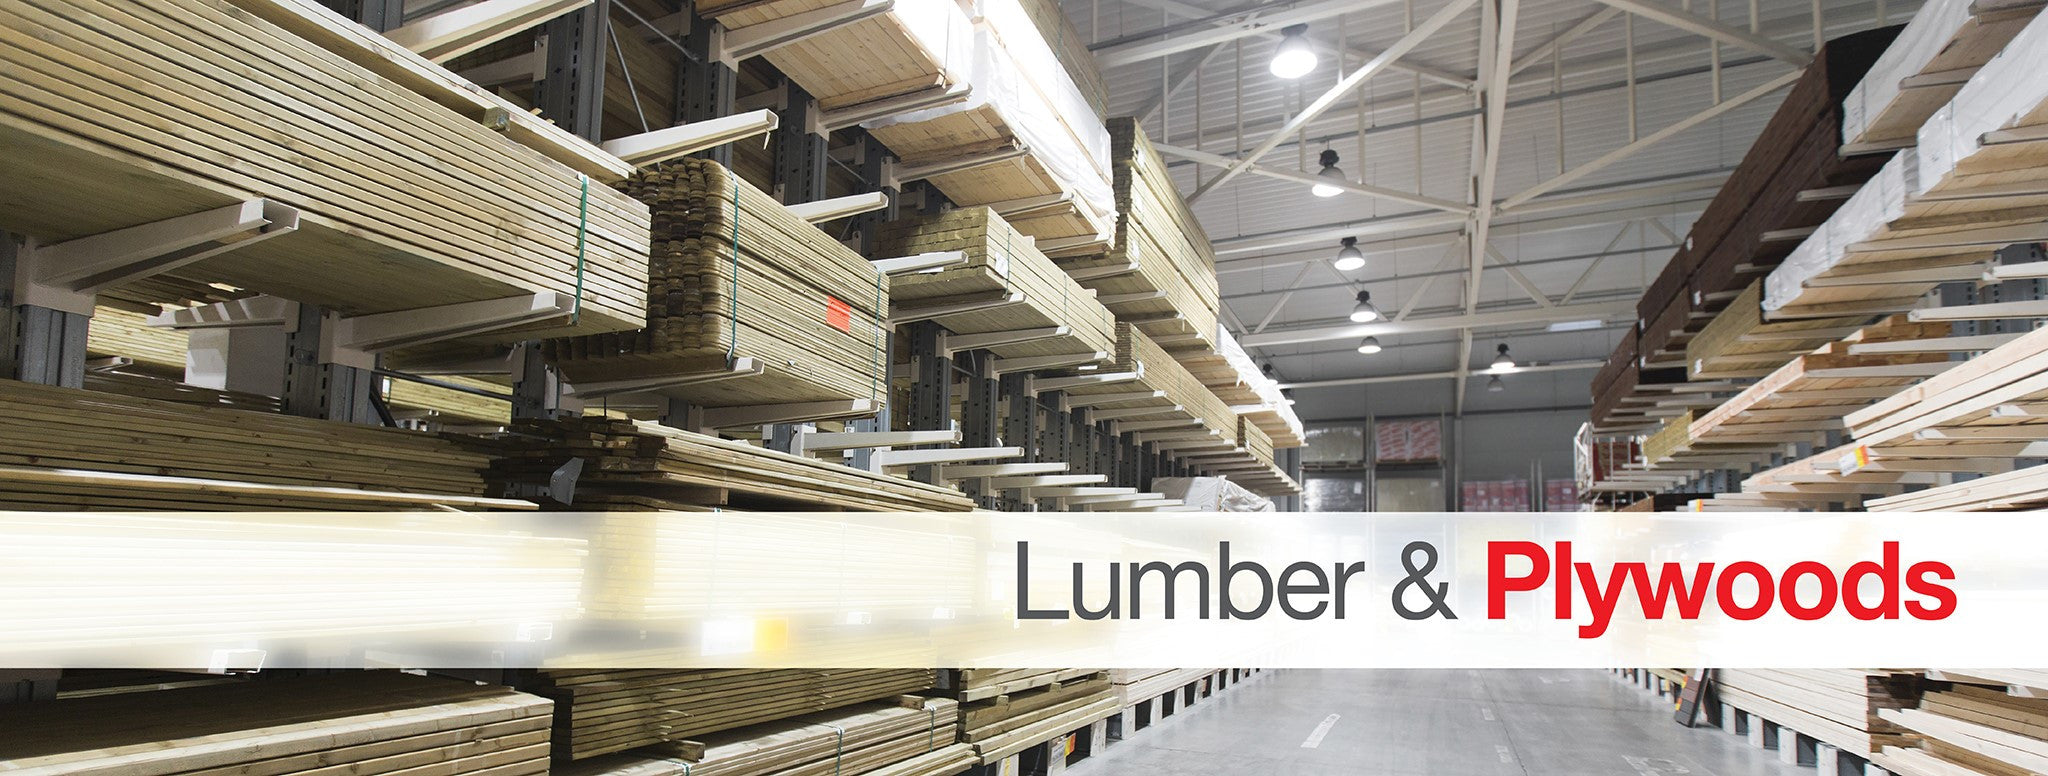 lumber and plywood for sale